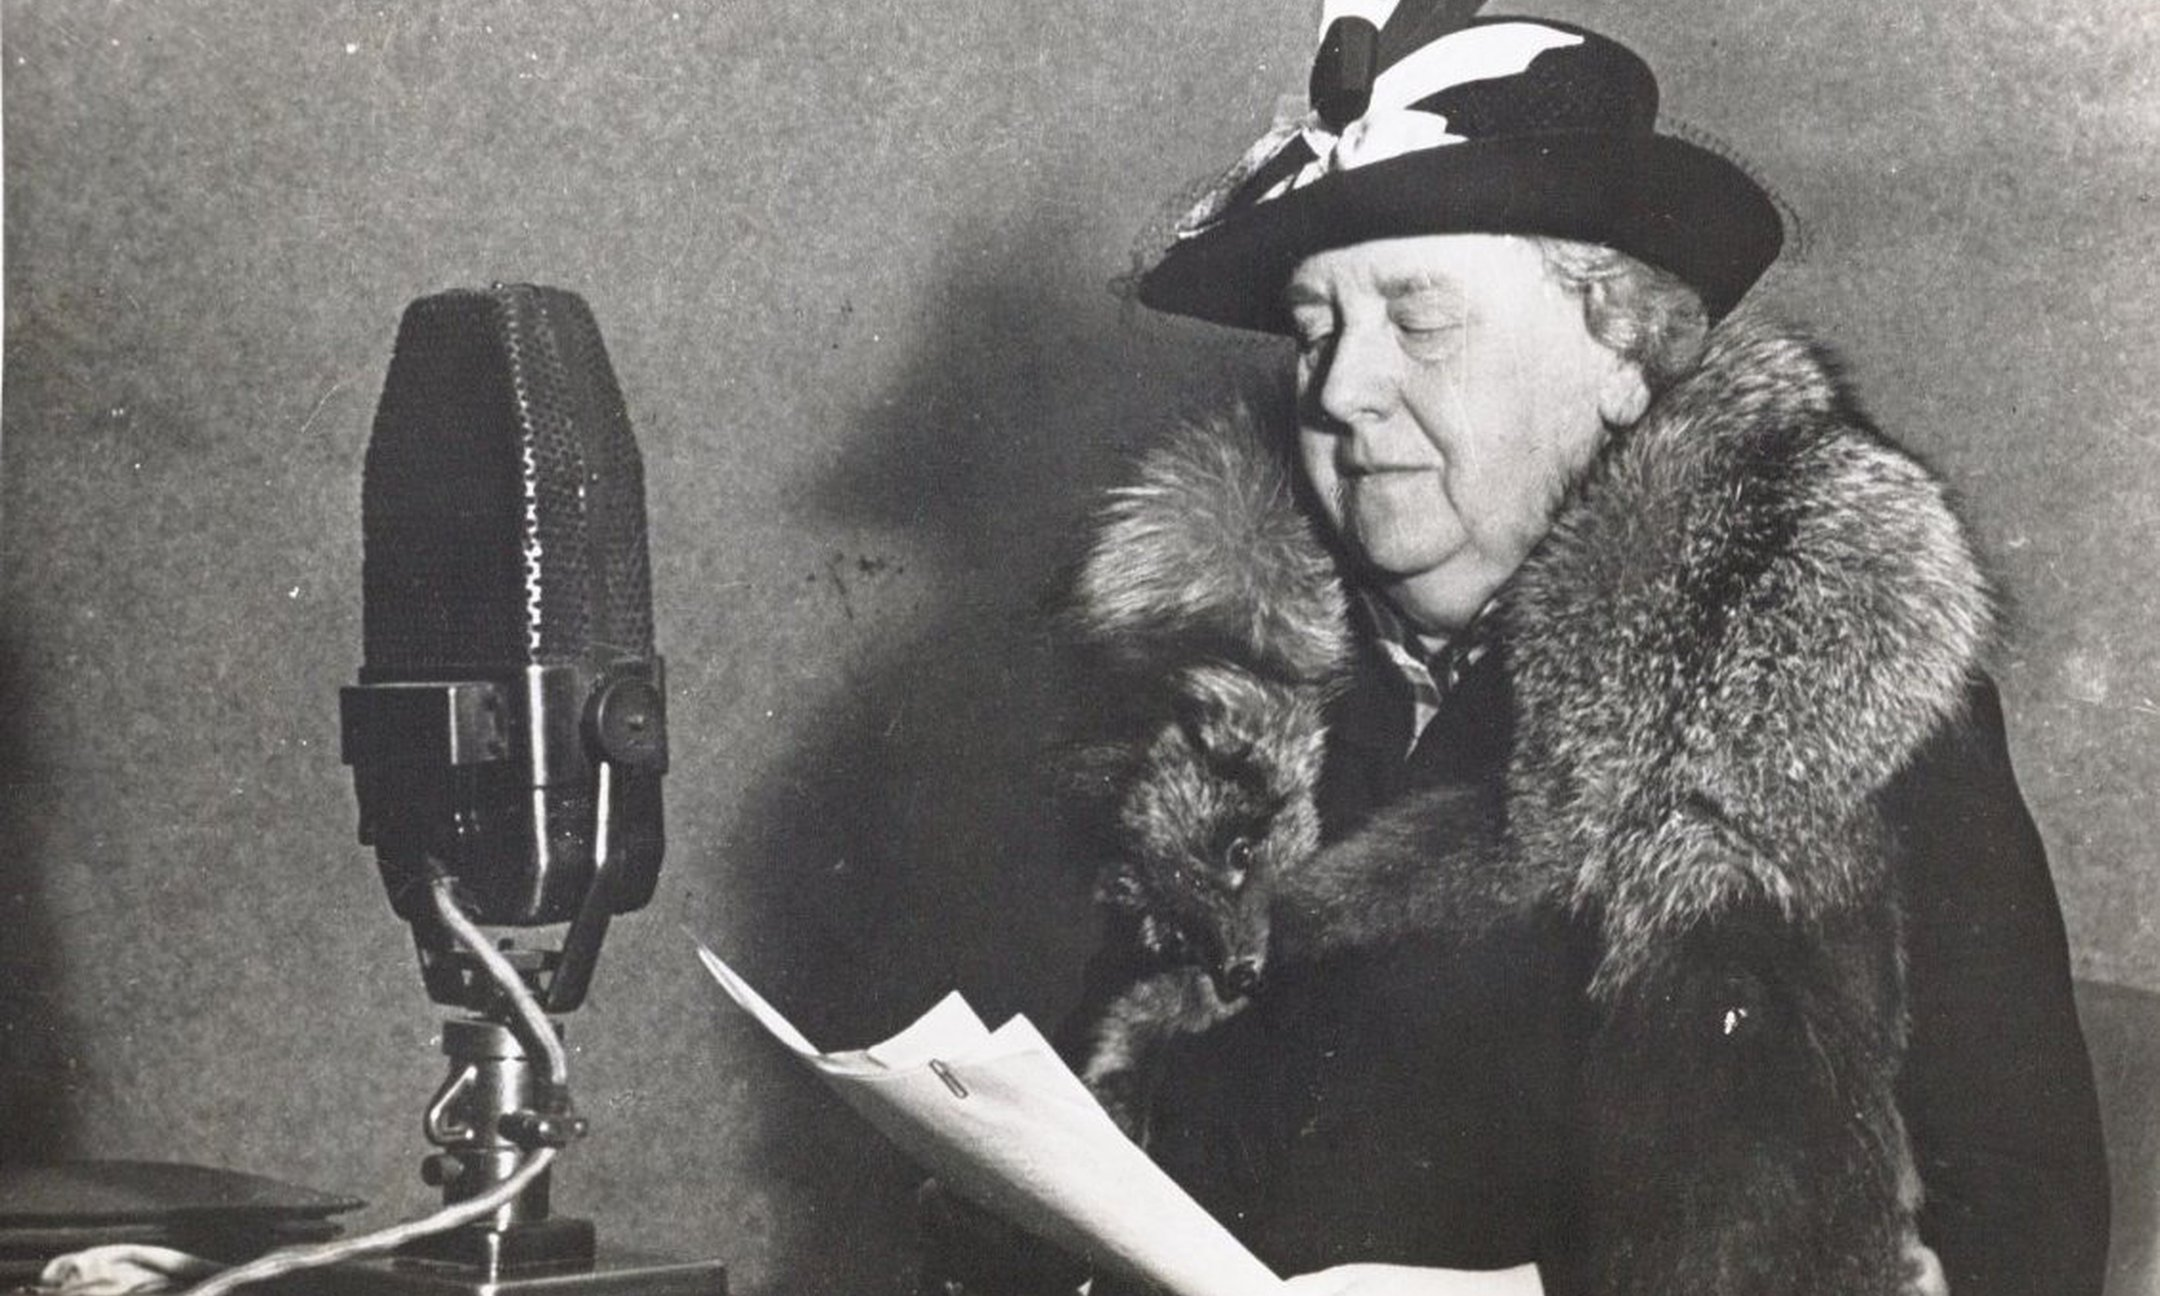 From England, Queen Wilhelmina made every effort to support the occupied Netherlands. Here, she addresses the Dutch citizens via Radio Oranje